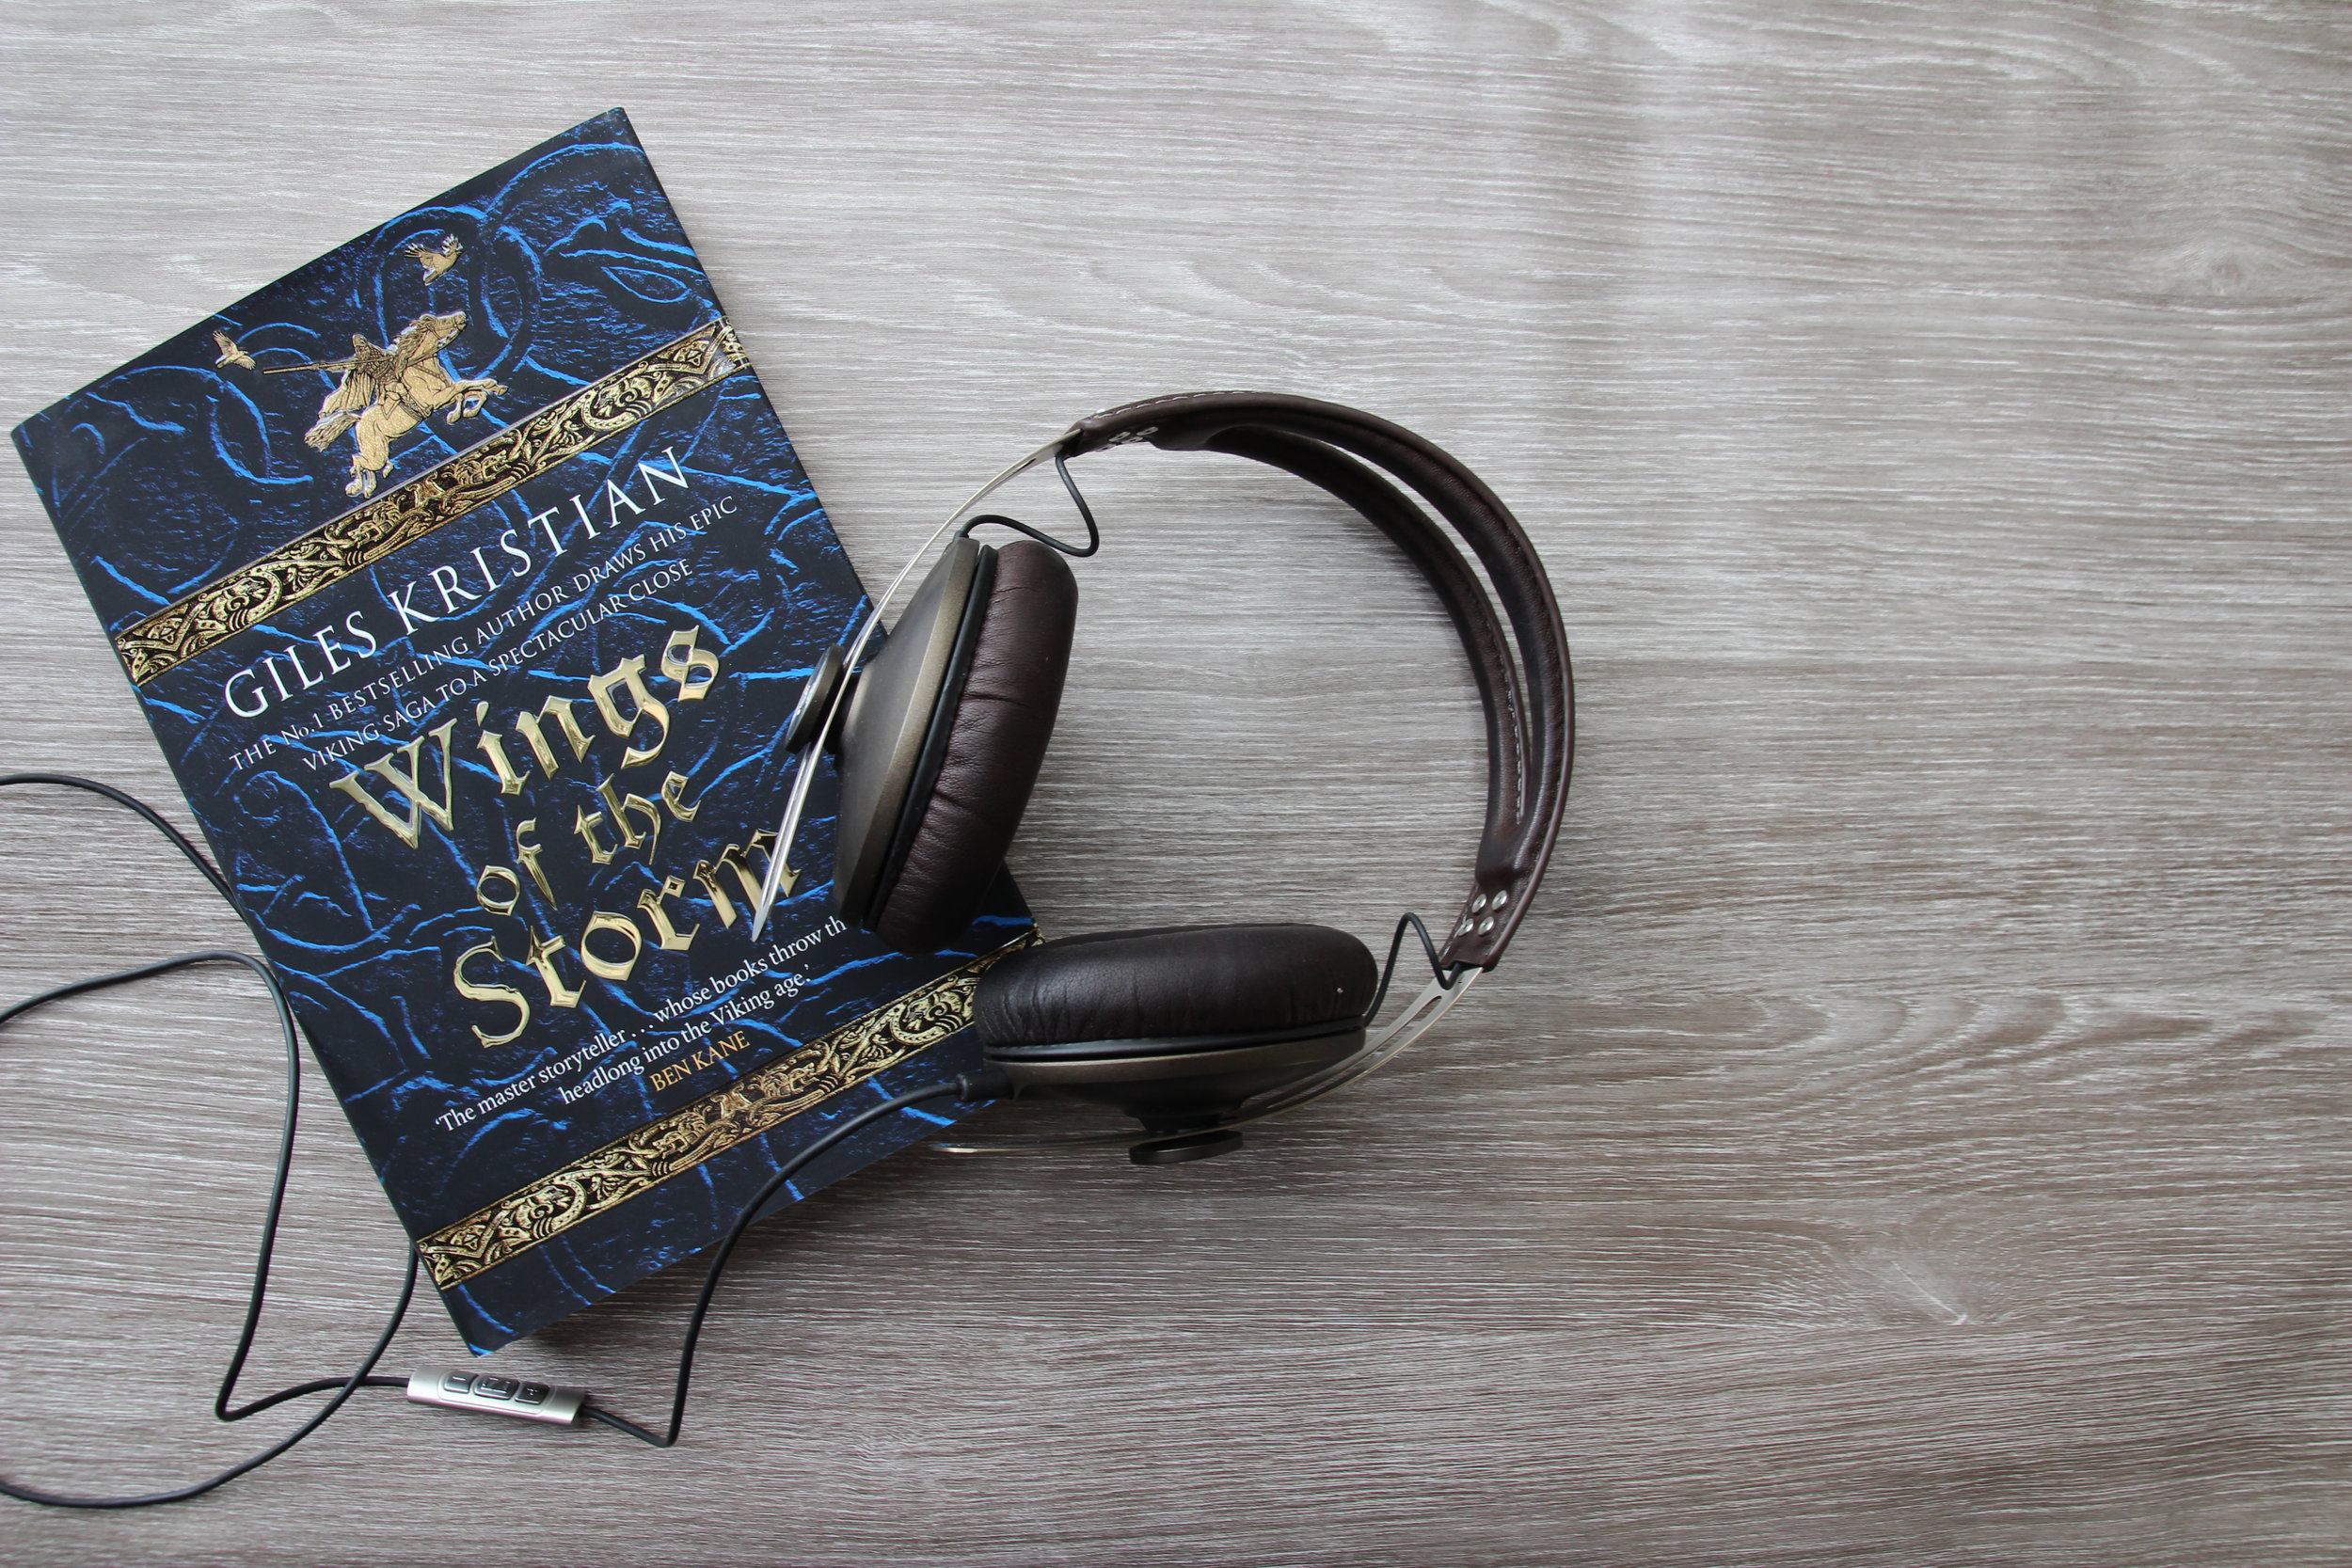 Wings of the Storm Audio Book by Giles Kristian